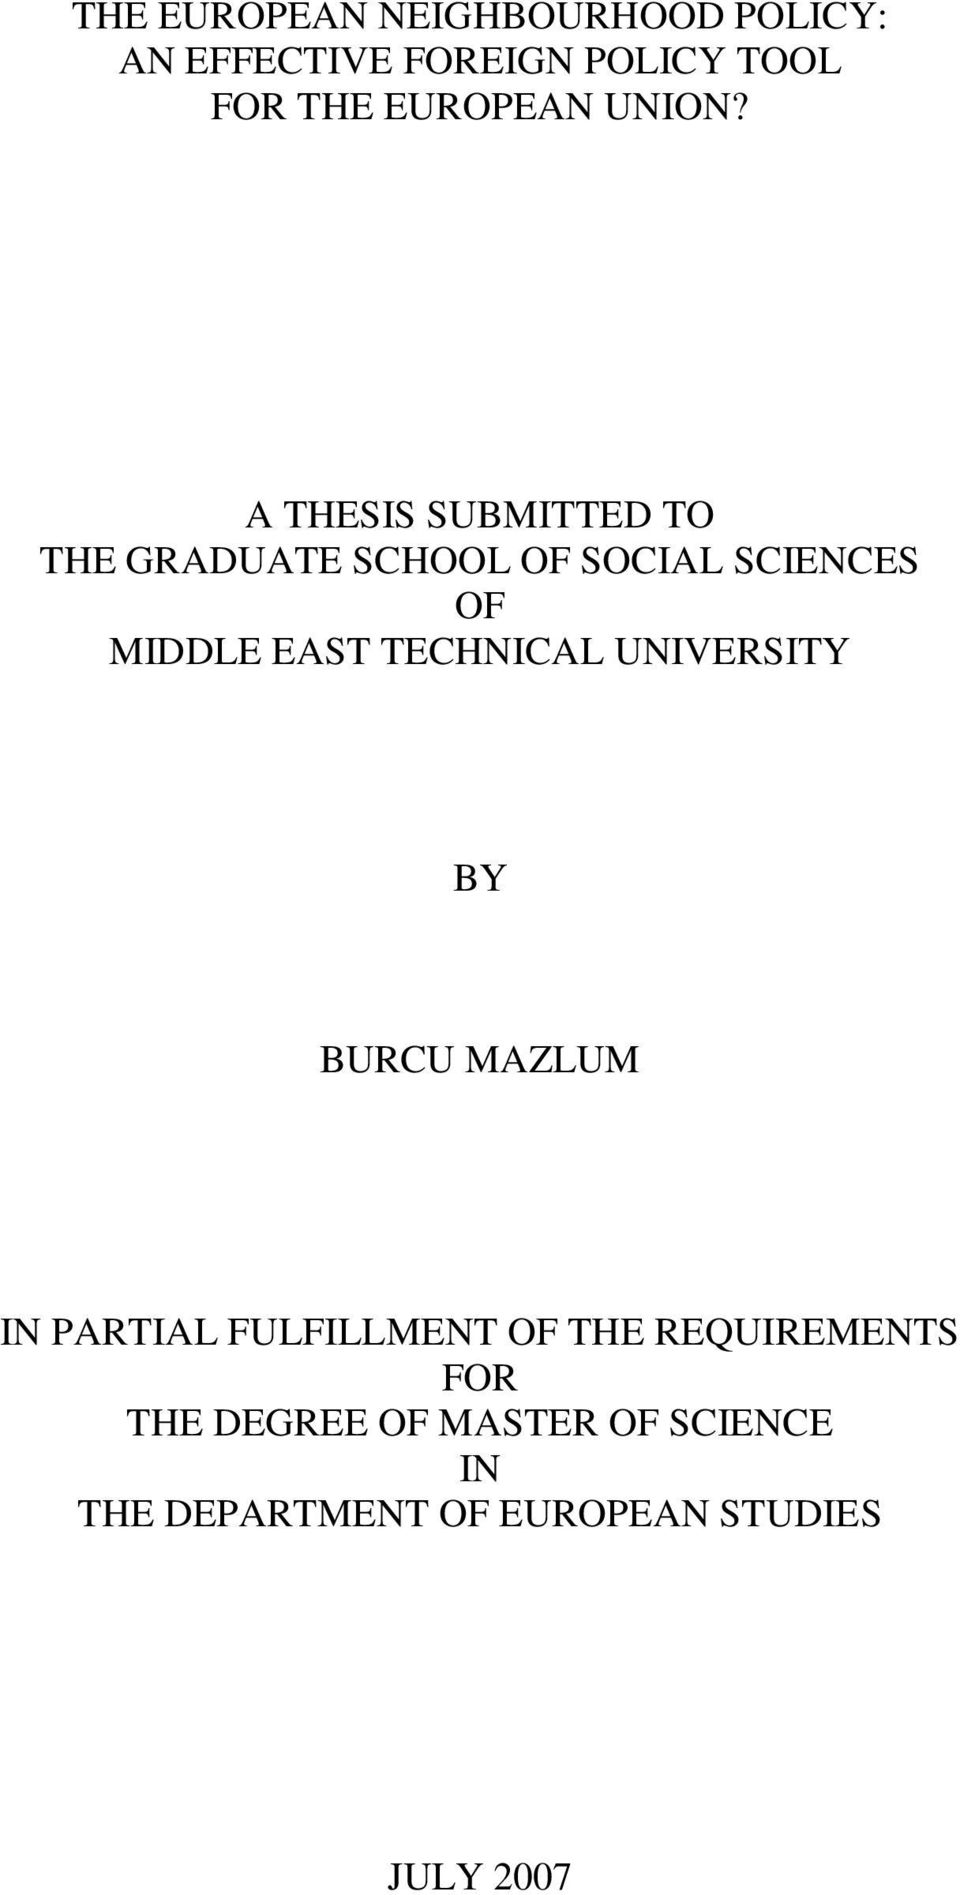 A THESIS SUBMITTED TO THE GRADUATE SCHOOL OF SOCIAL SCIENCES OF MIDDLE EAST